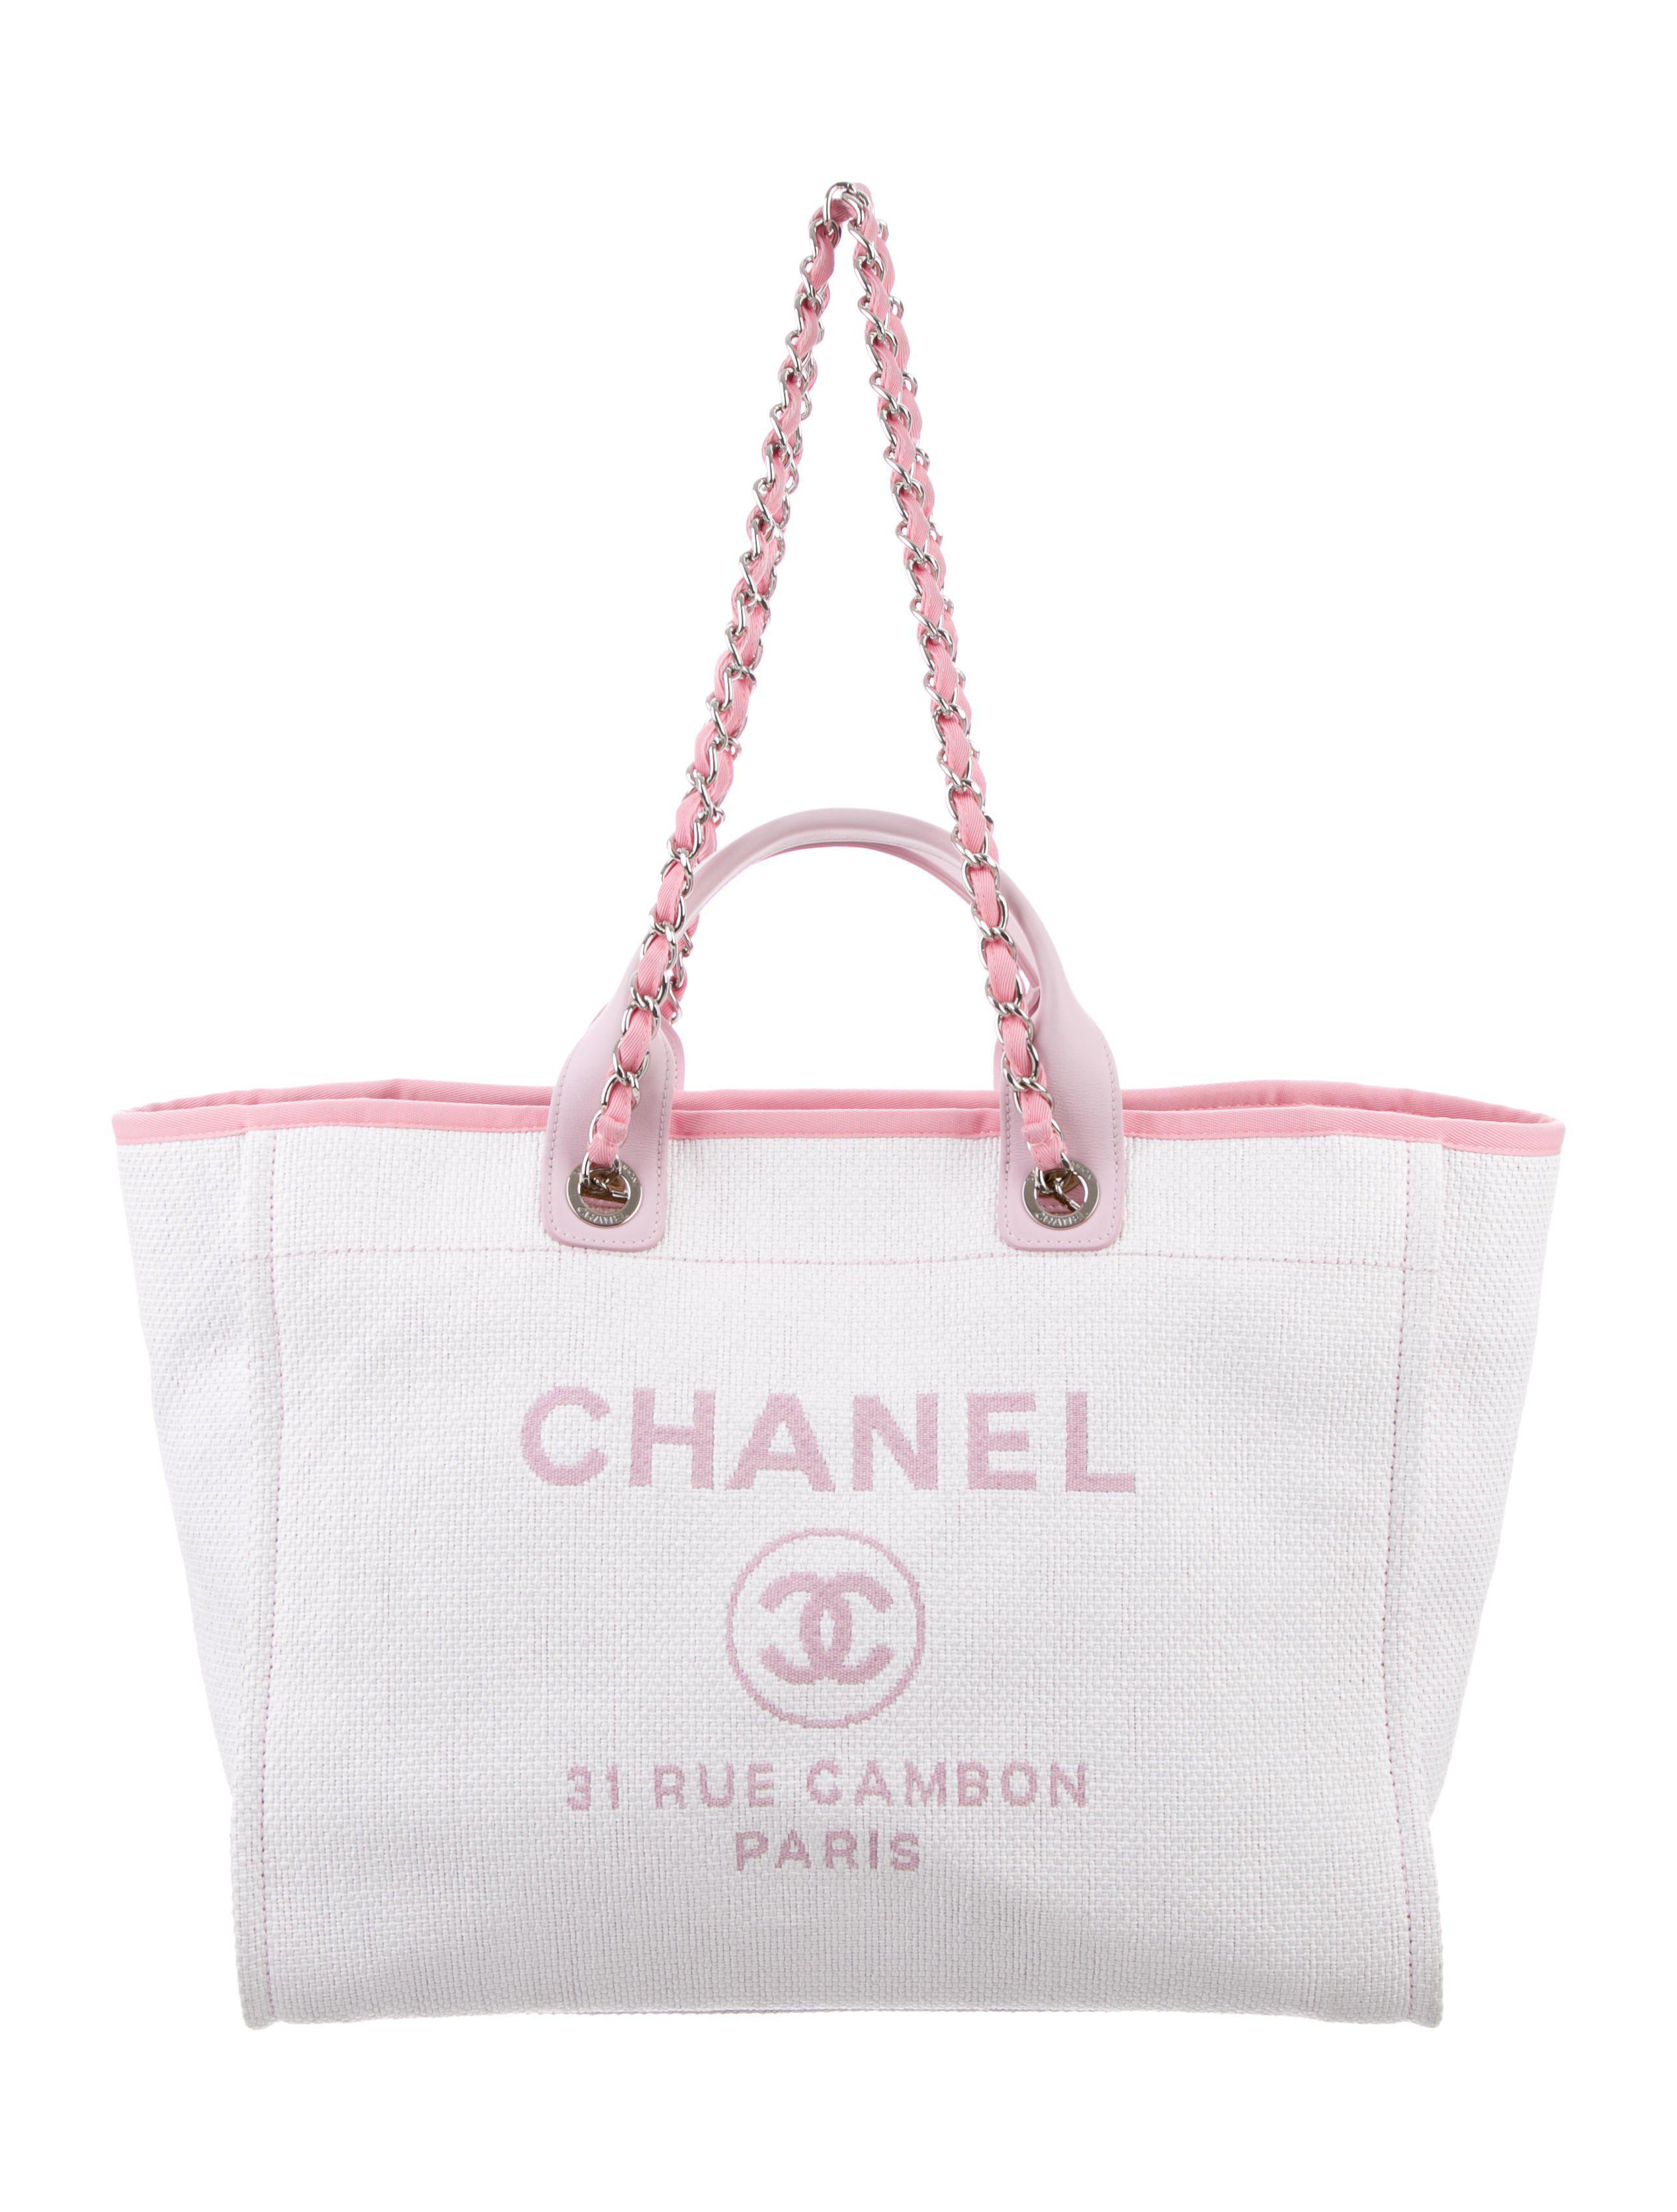 30430e657ecb Lyst - Chanel 2016 Medium Deauville Tote Pink in Metallic